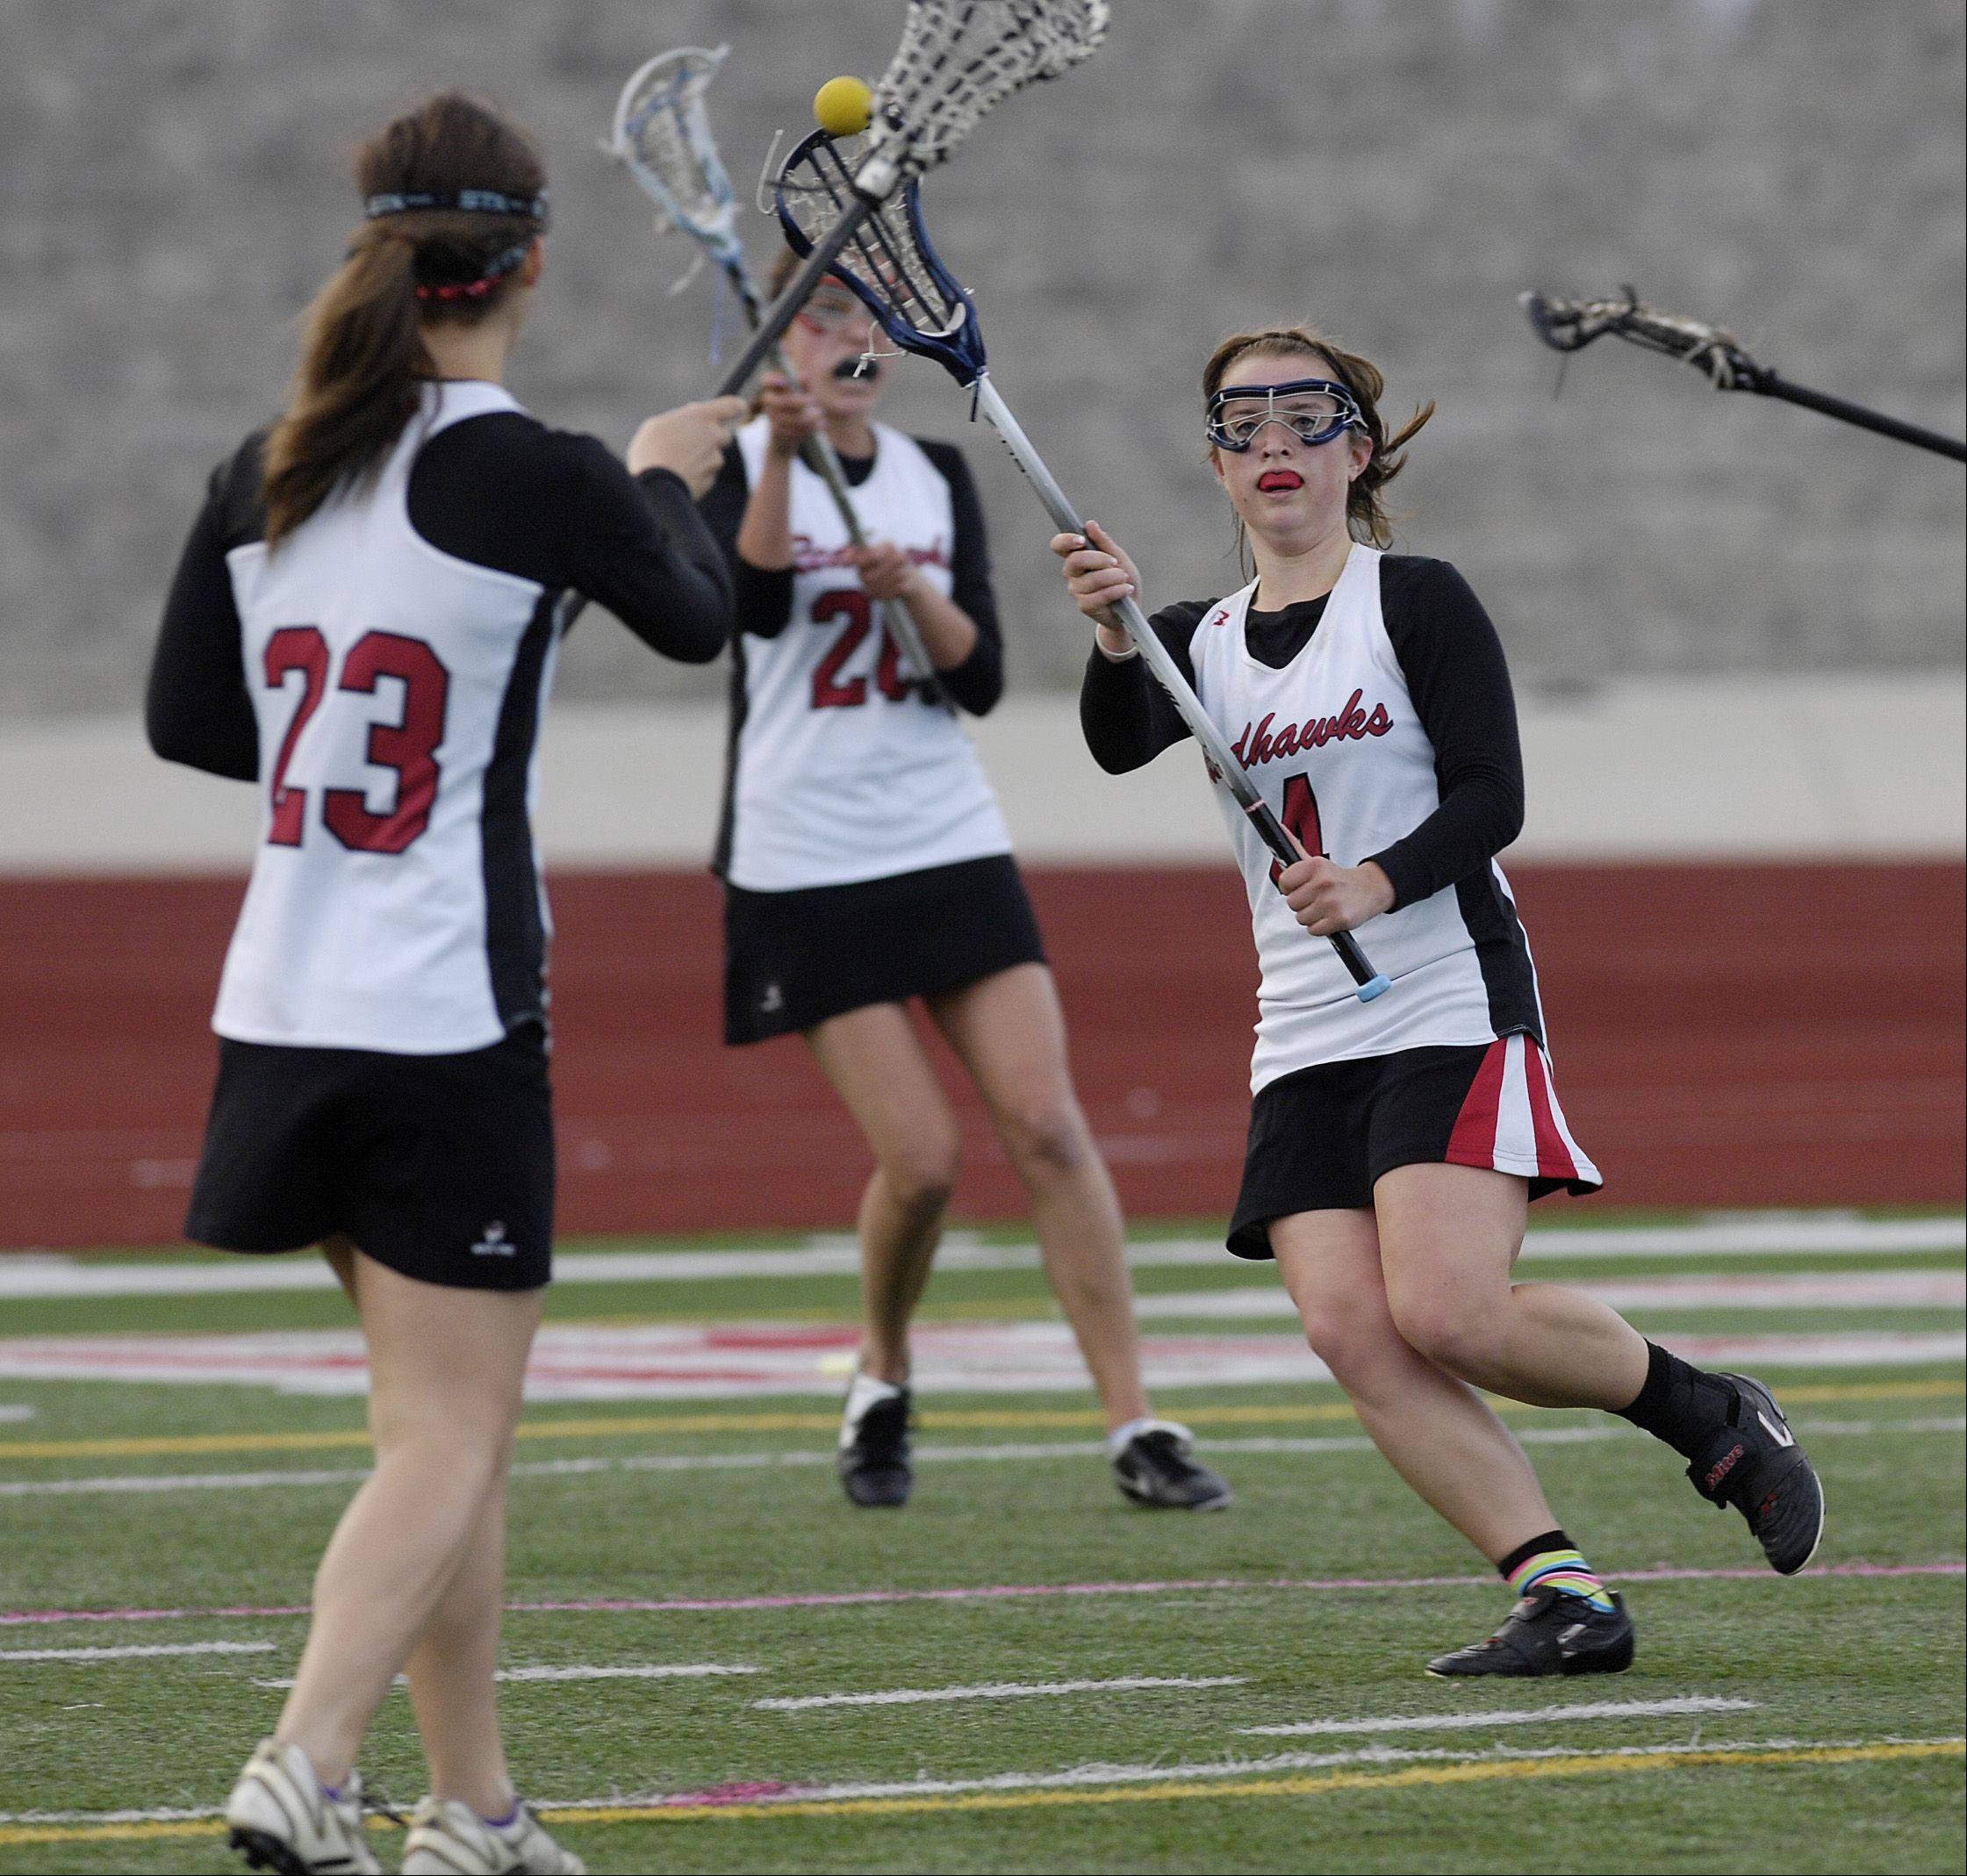 Naperville Central High School lacrosse club players are seeking official sport status from Naperville Unit District 203. The request comes as the IHSA is nearing the amount of school-sponsored girls and boys lacrosse teams it needs to launch a state championship series.